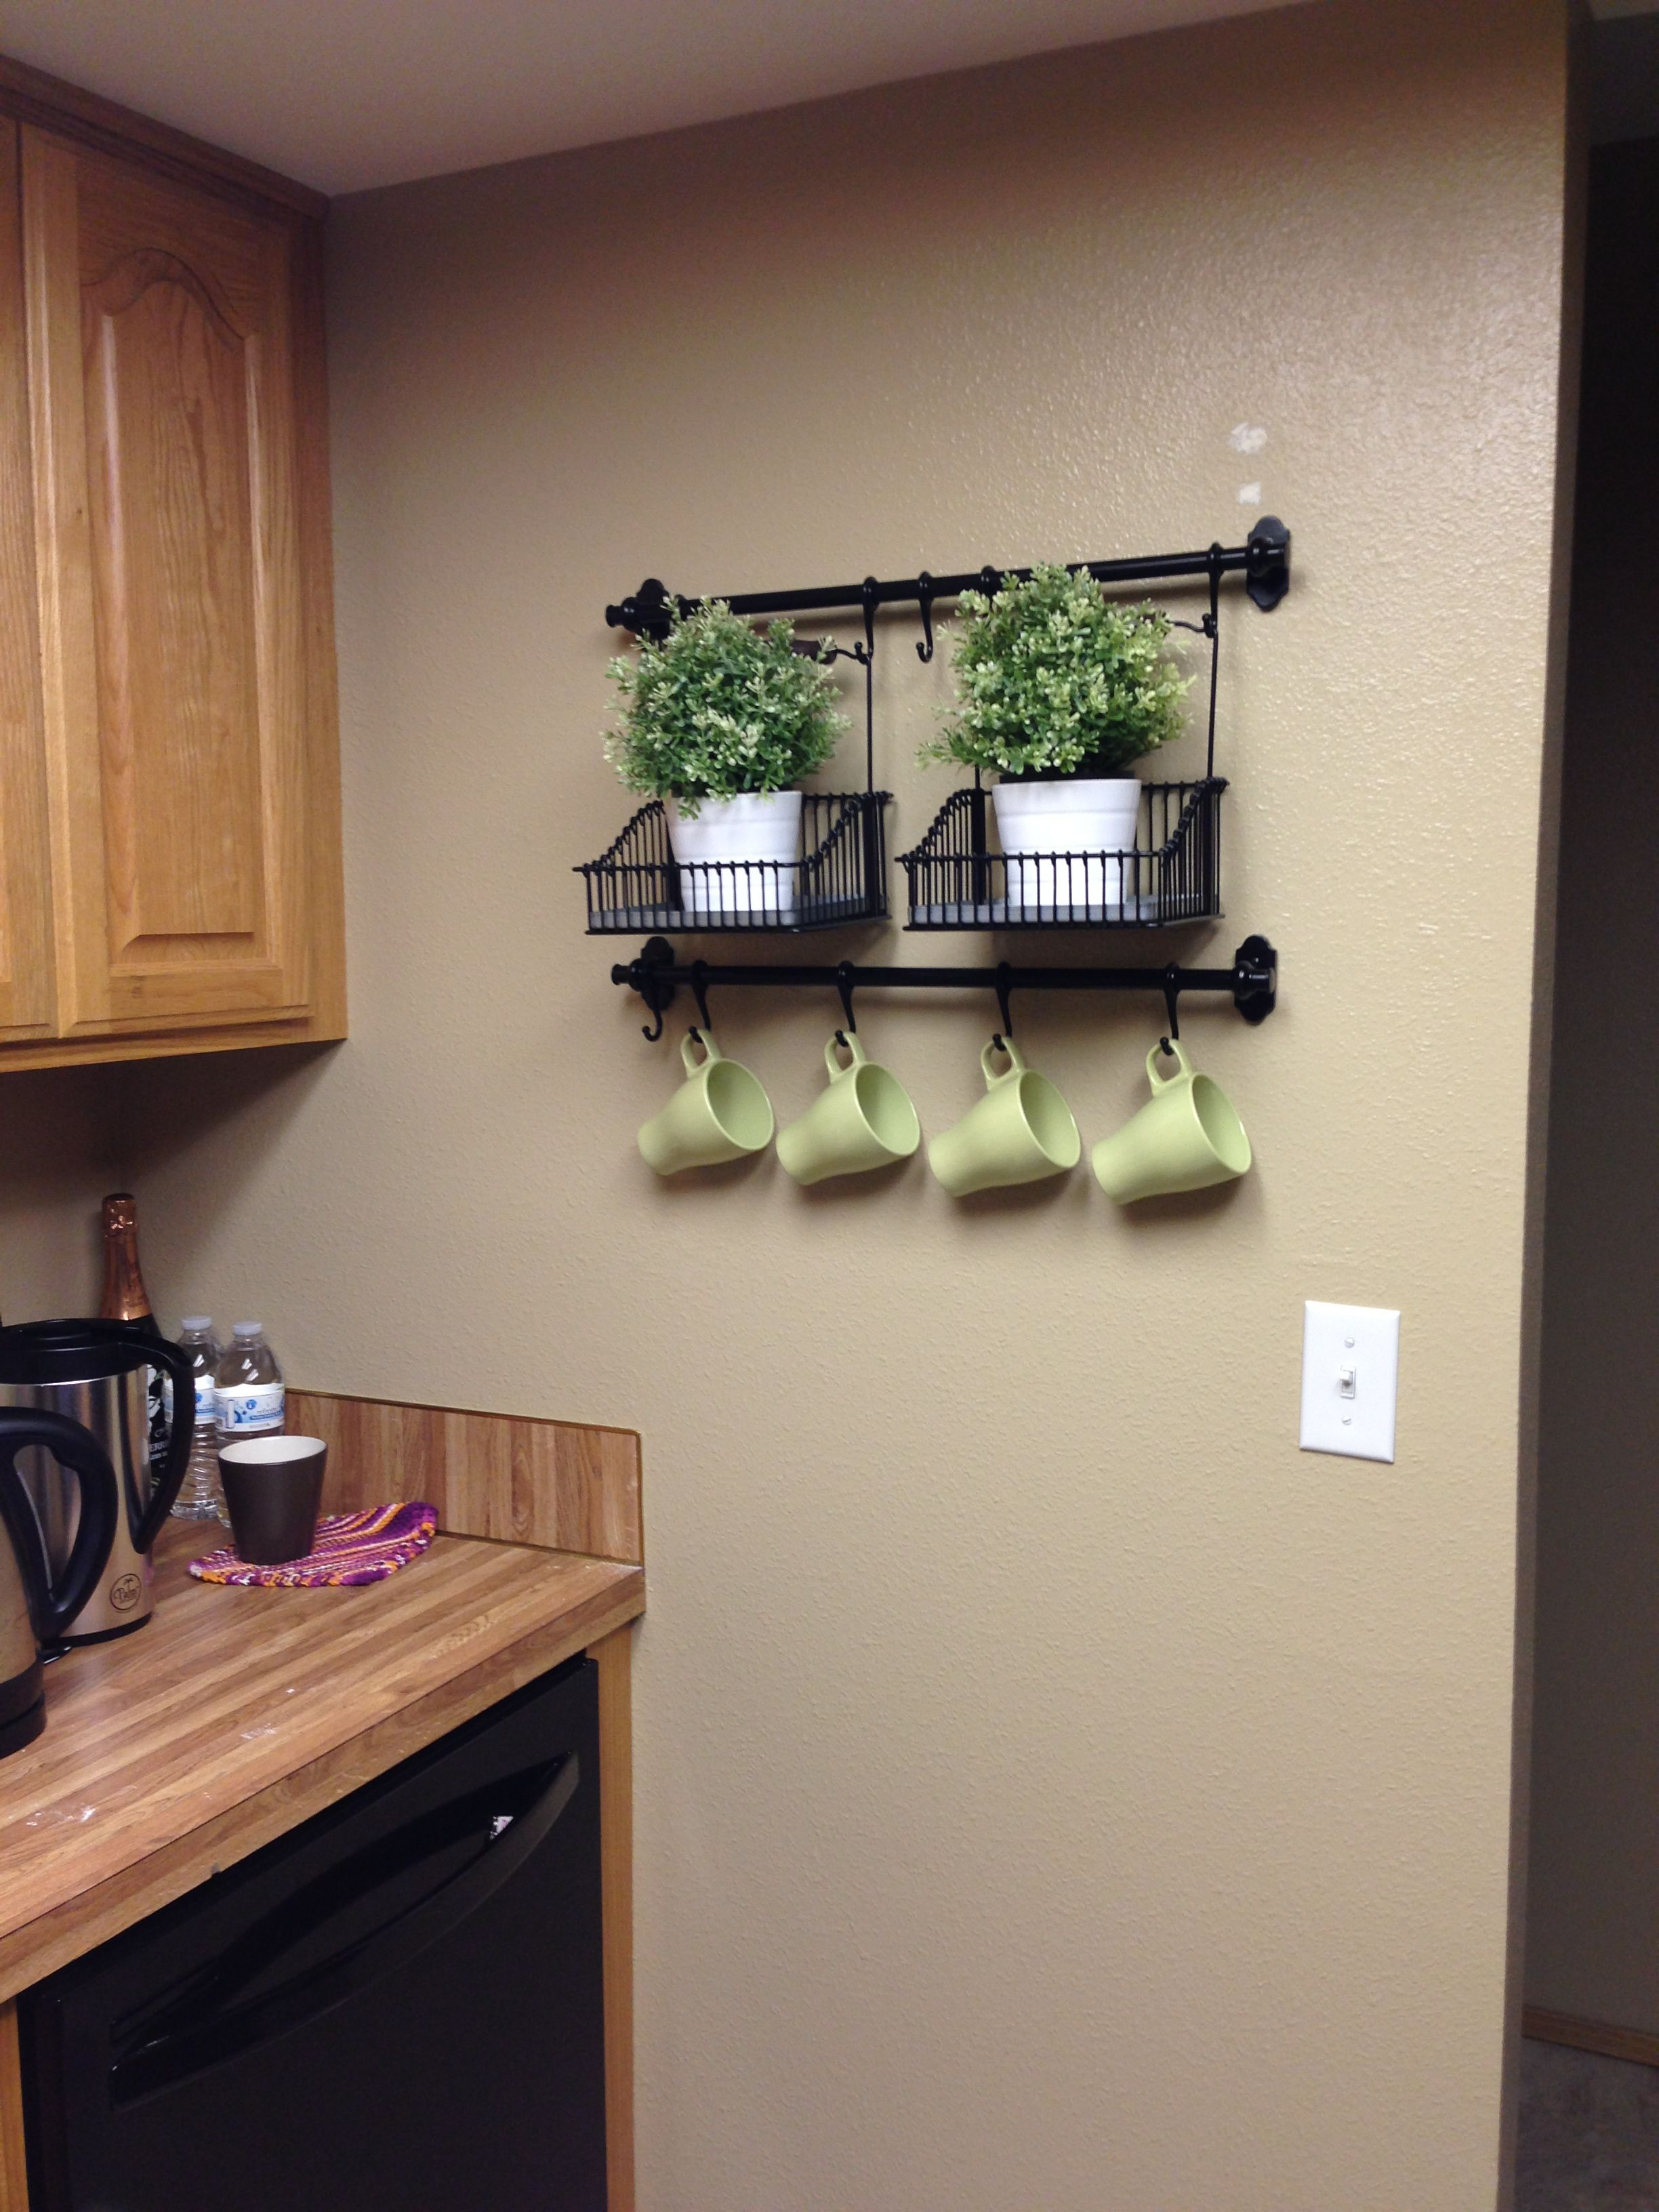 New kitchen wall decoration:)